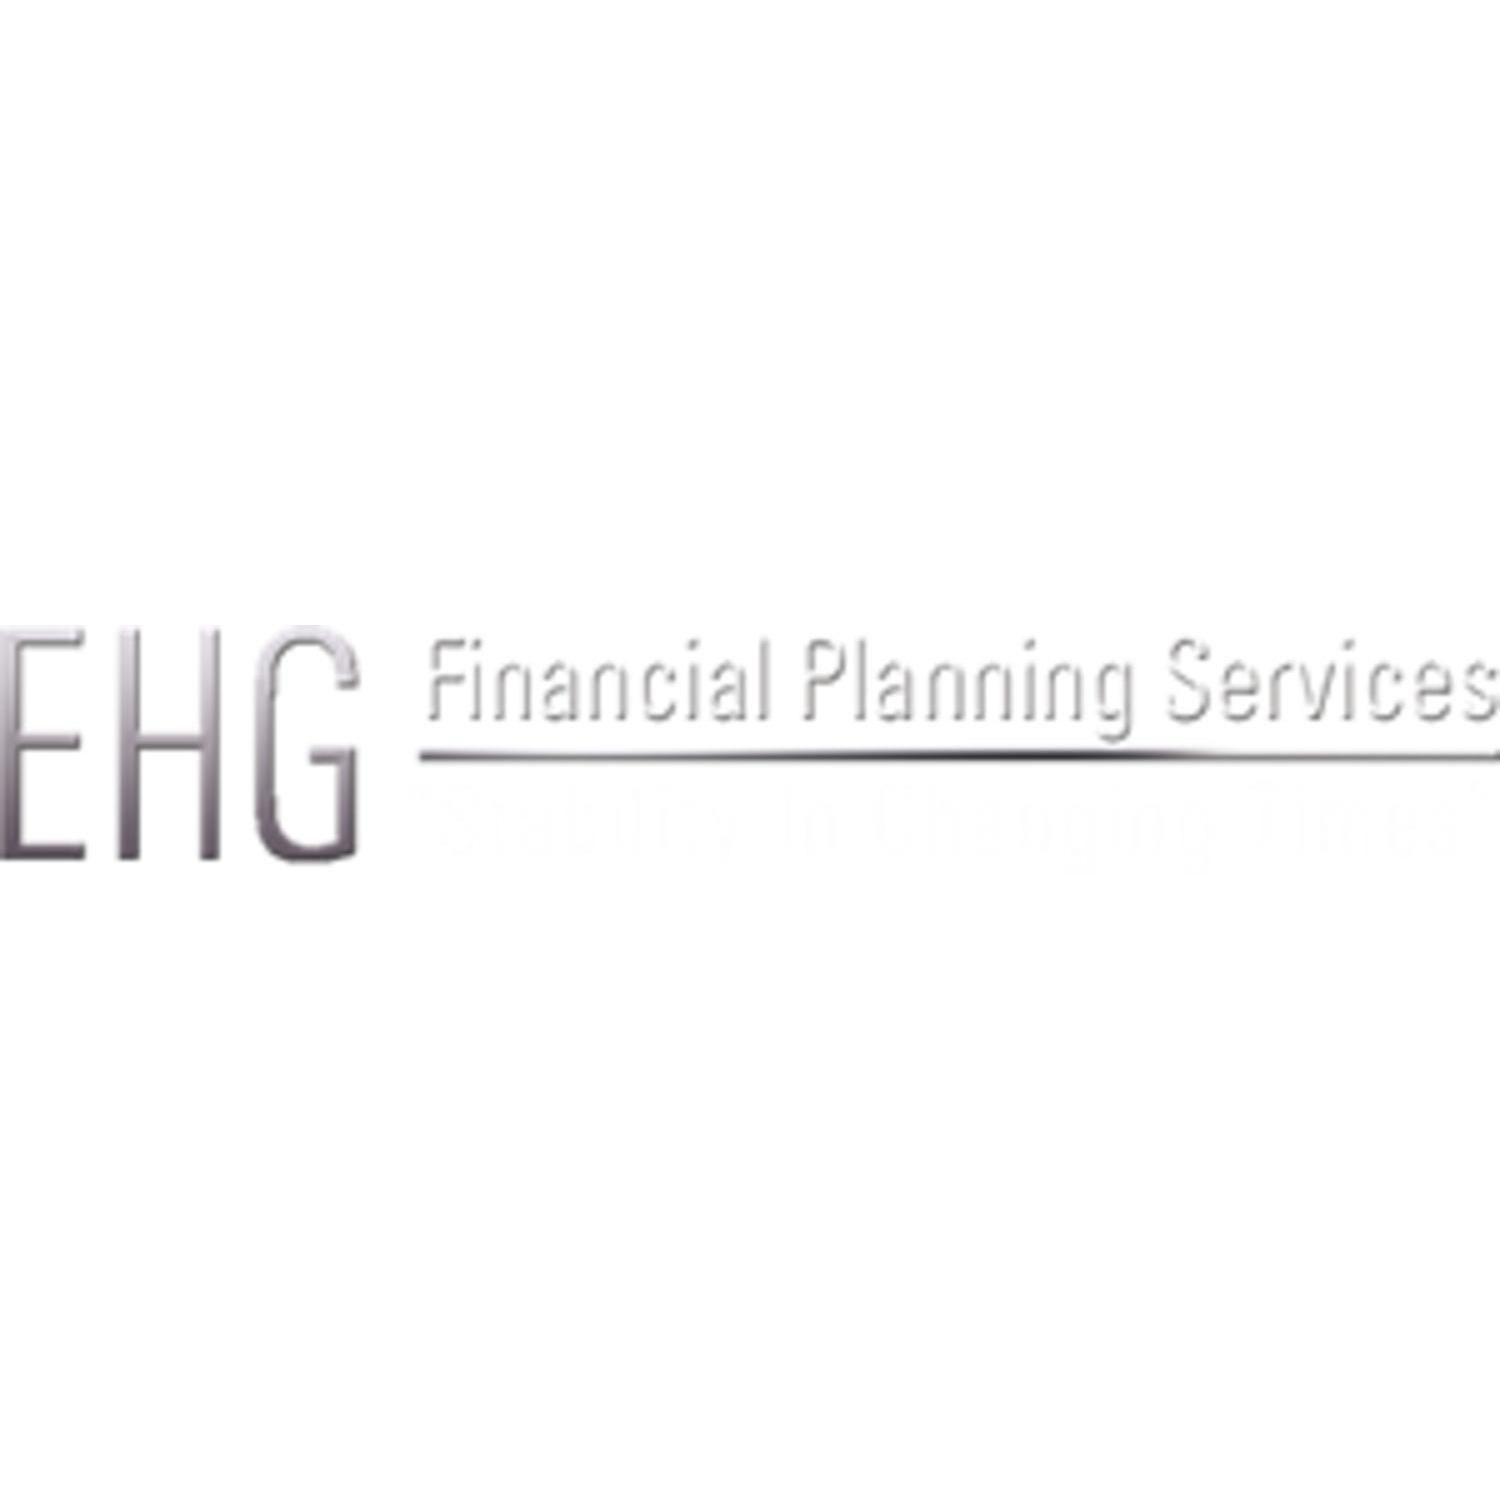 EHG Financial Planning Services